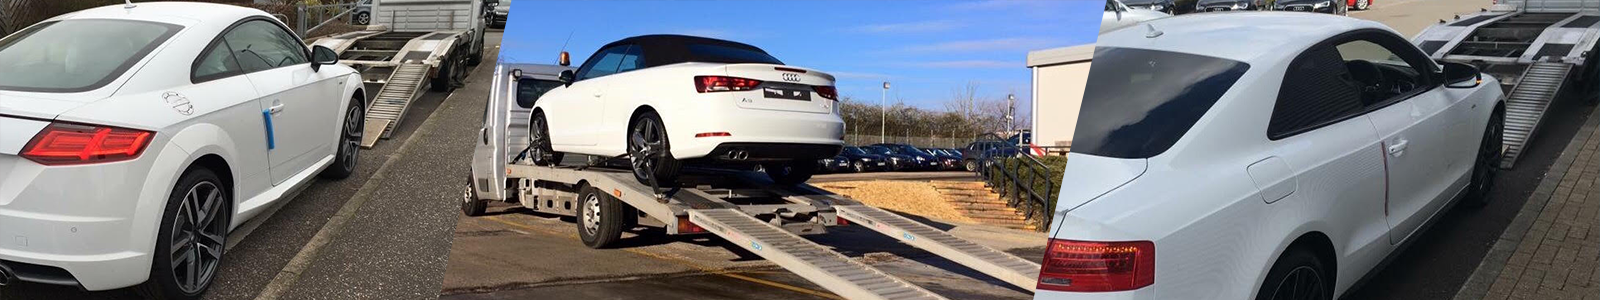 Recovery Services In Milton Keynes | Redstone Automotive